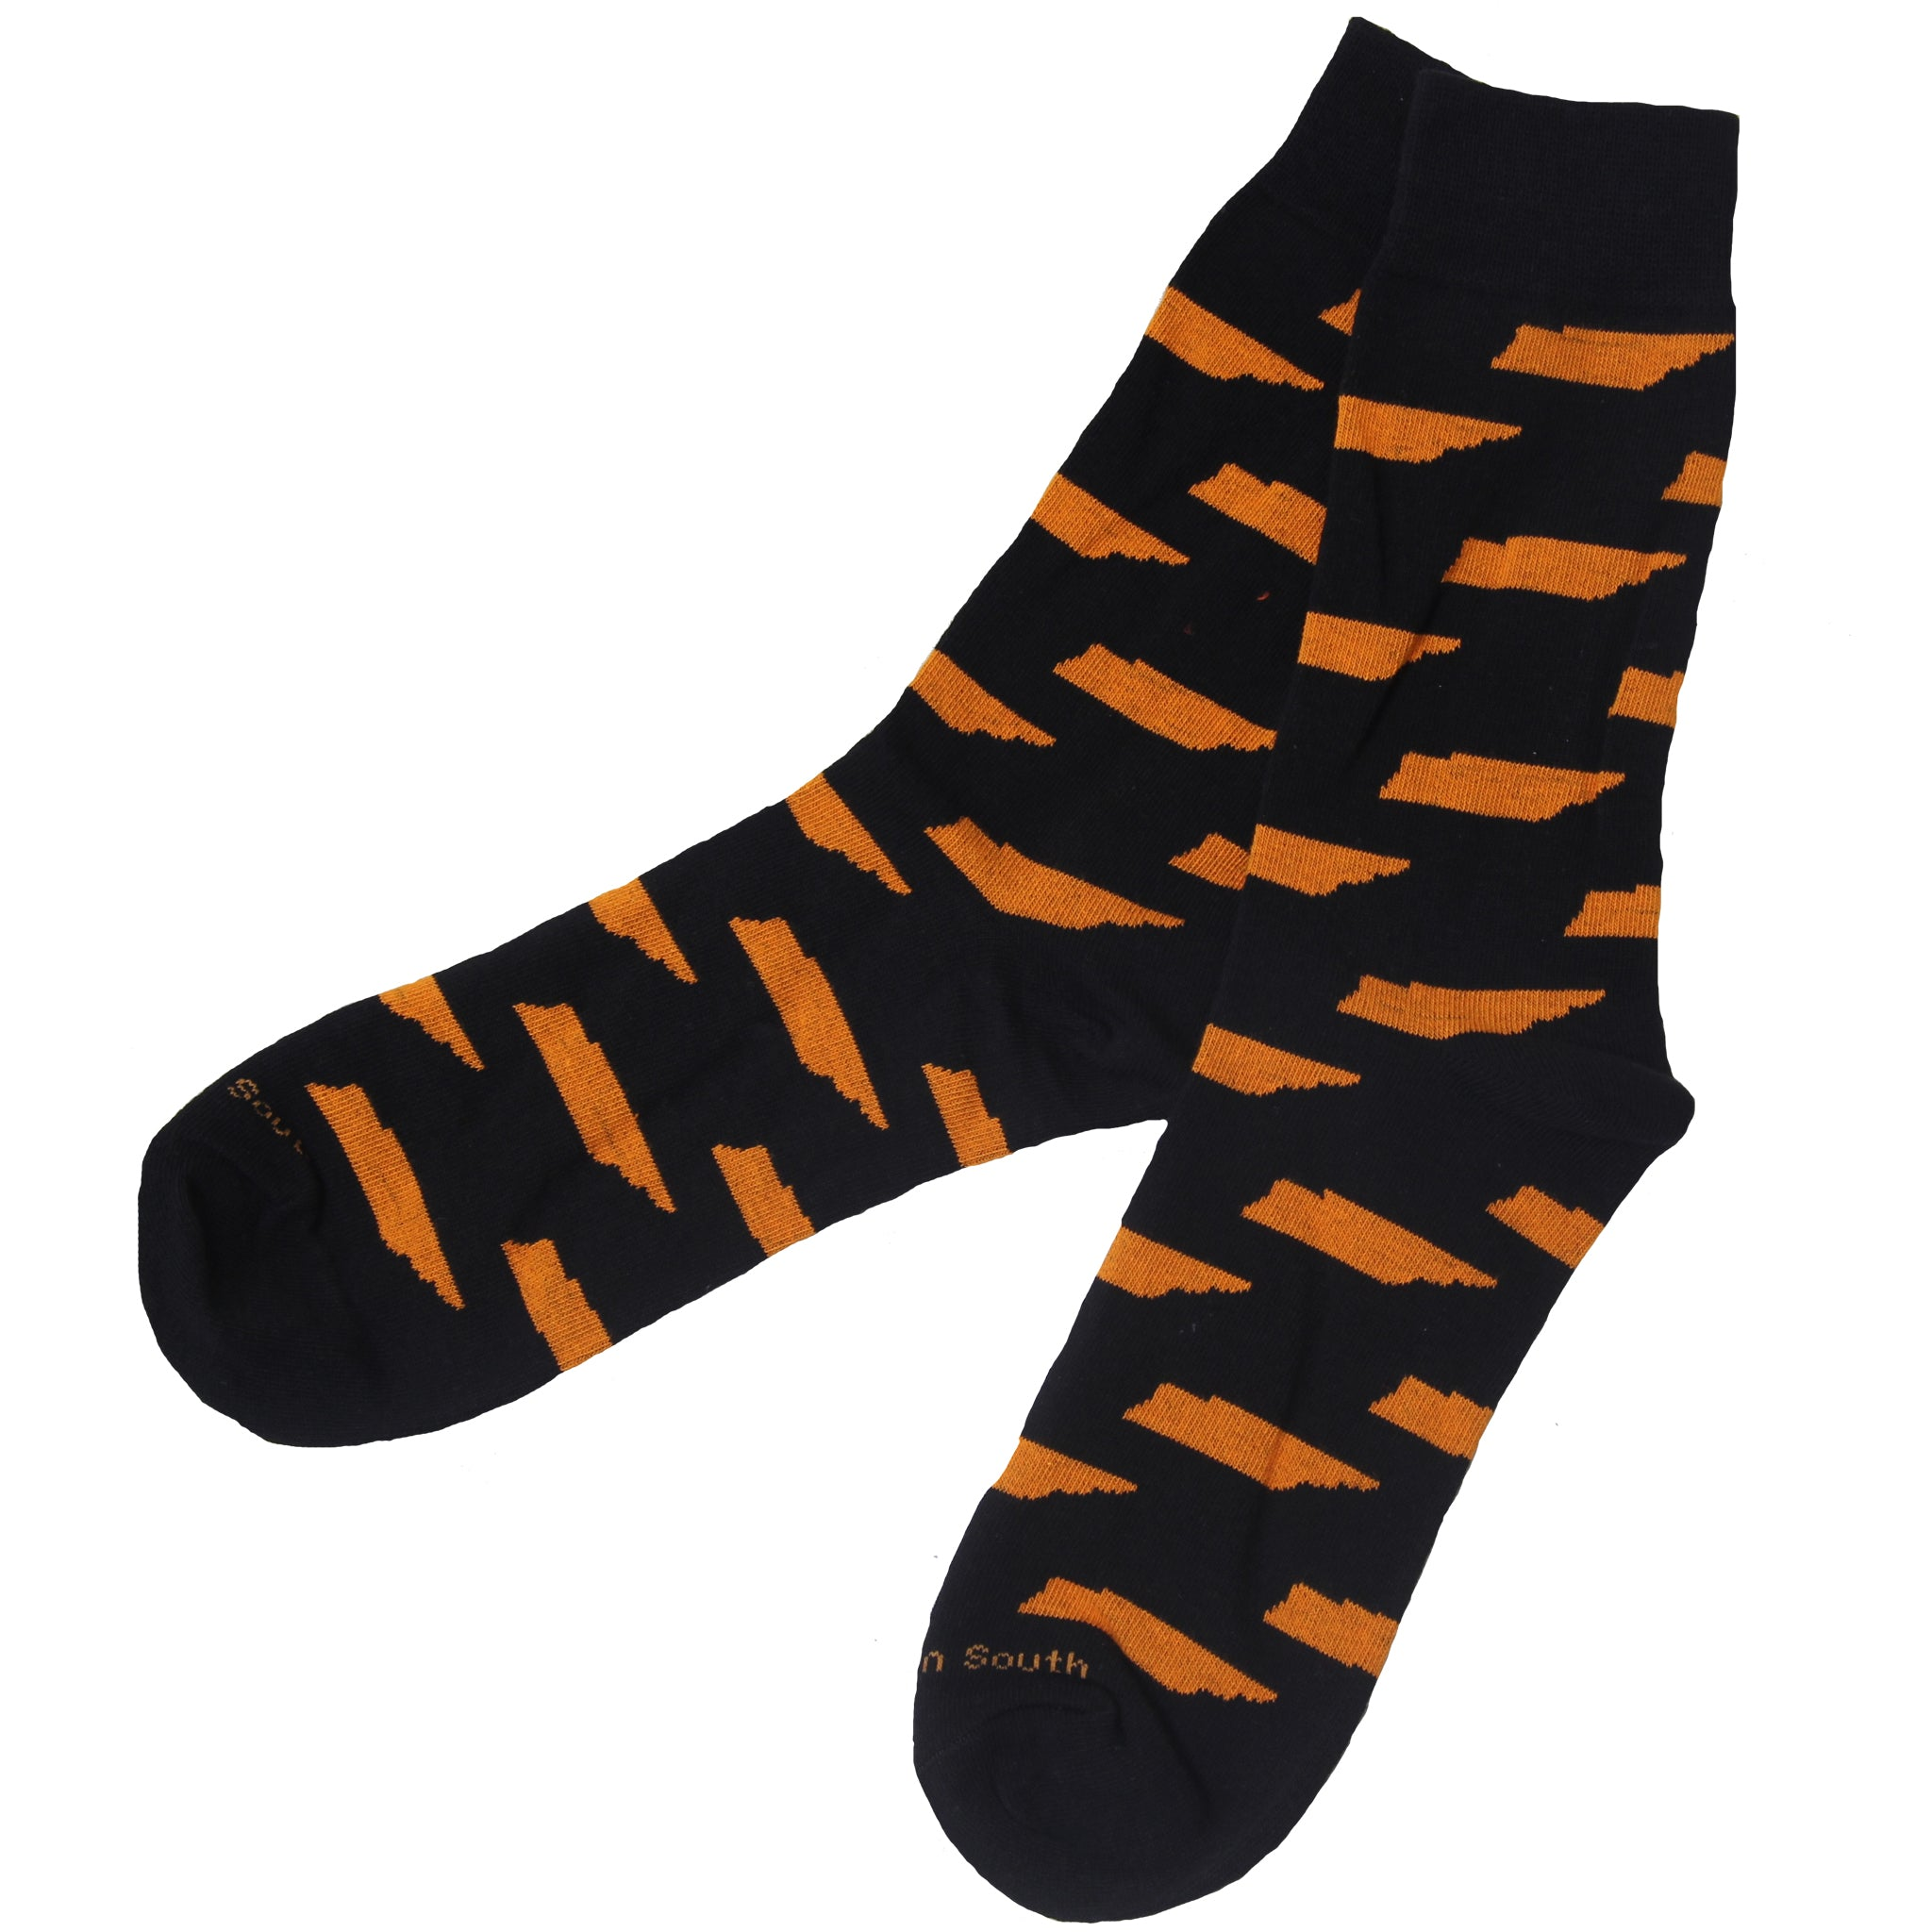 Black/Orange TN Socks - Barrel Down South